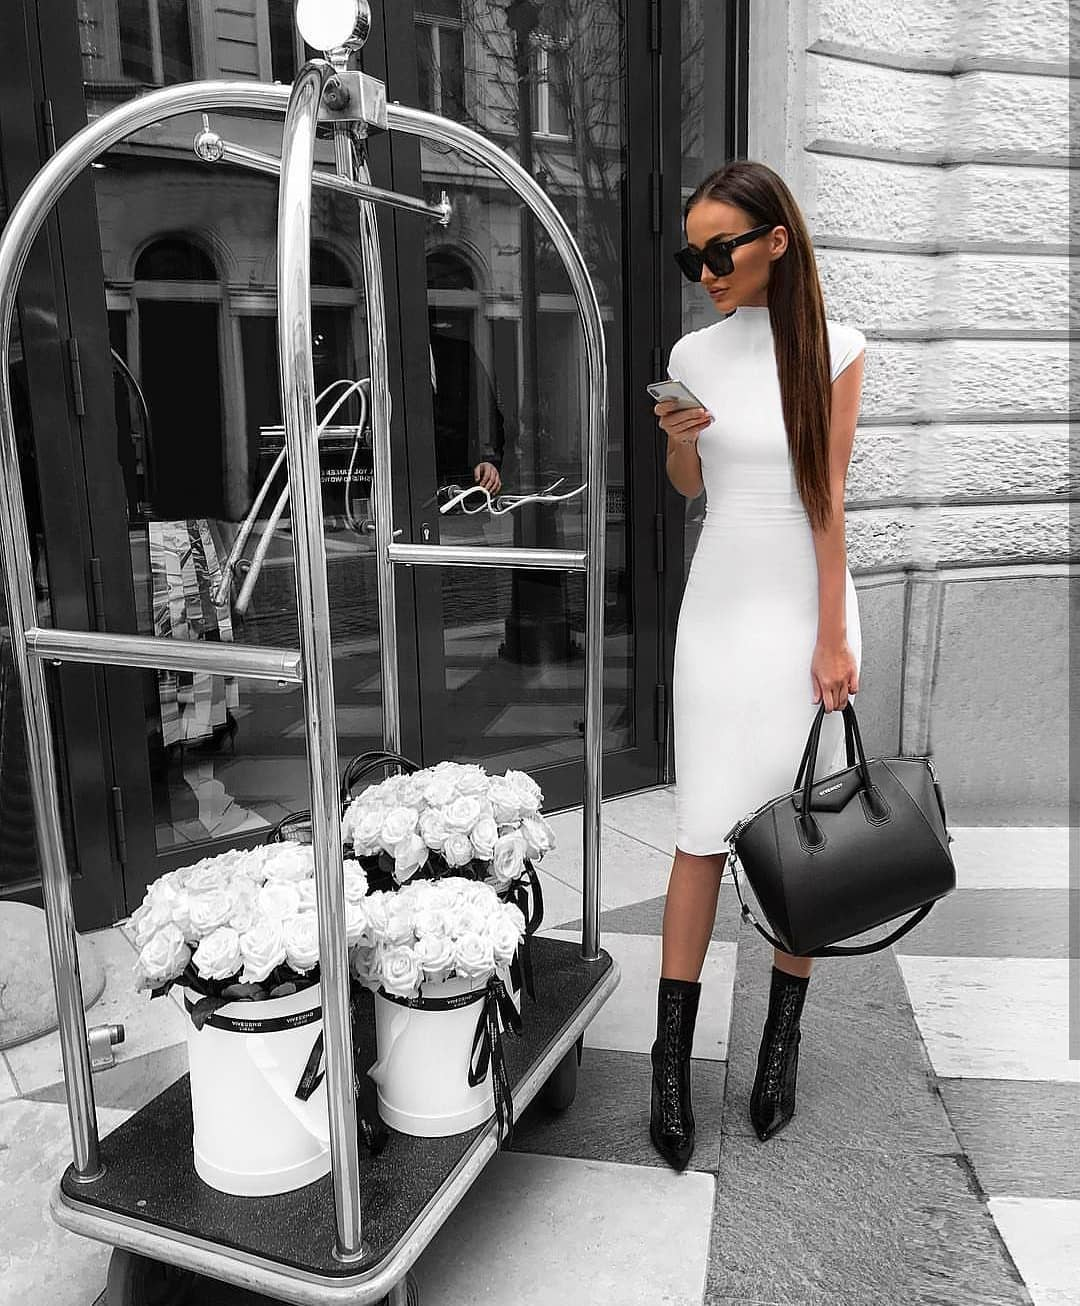 Can Brunette Wear White Pencil Dress With Black Ankle Boots 2020